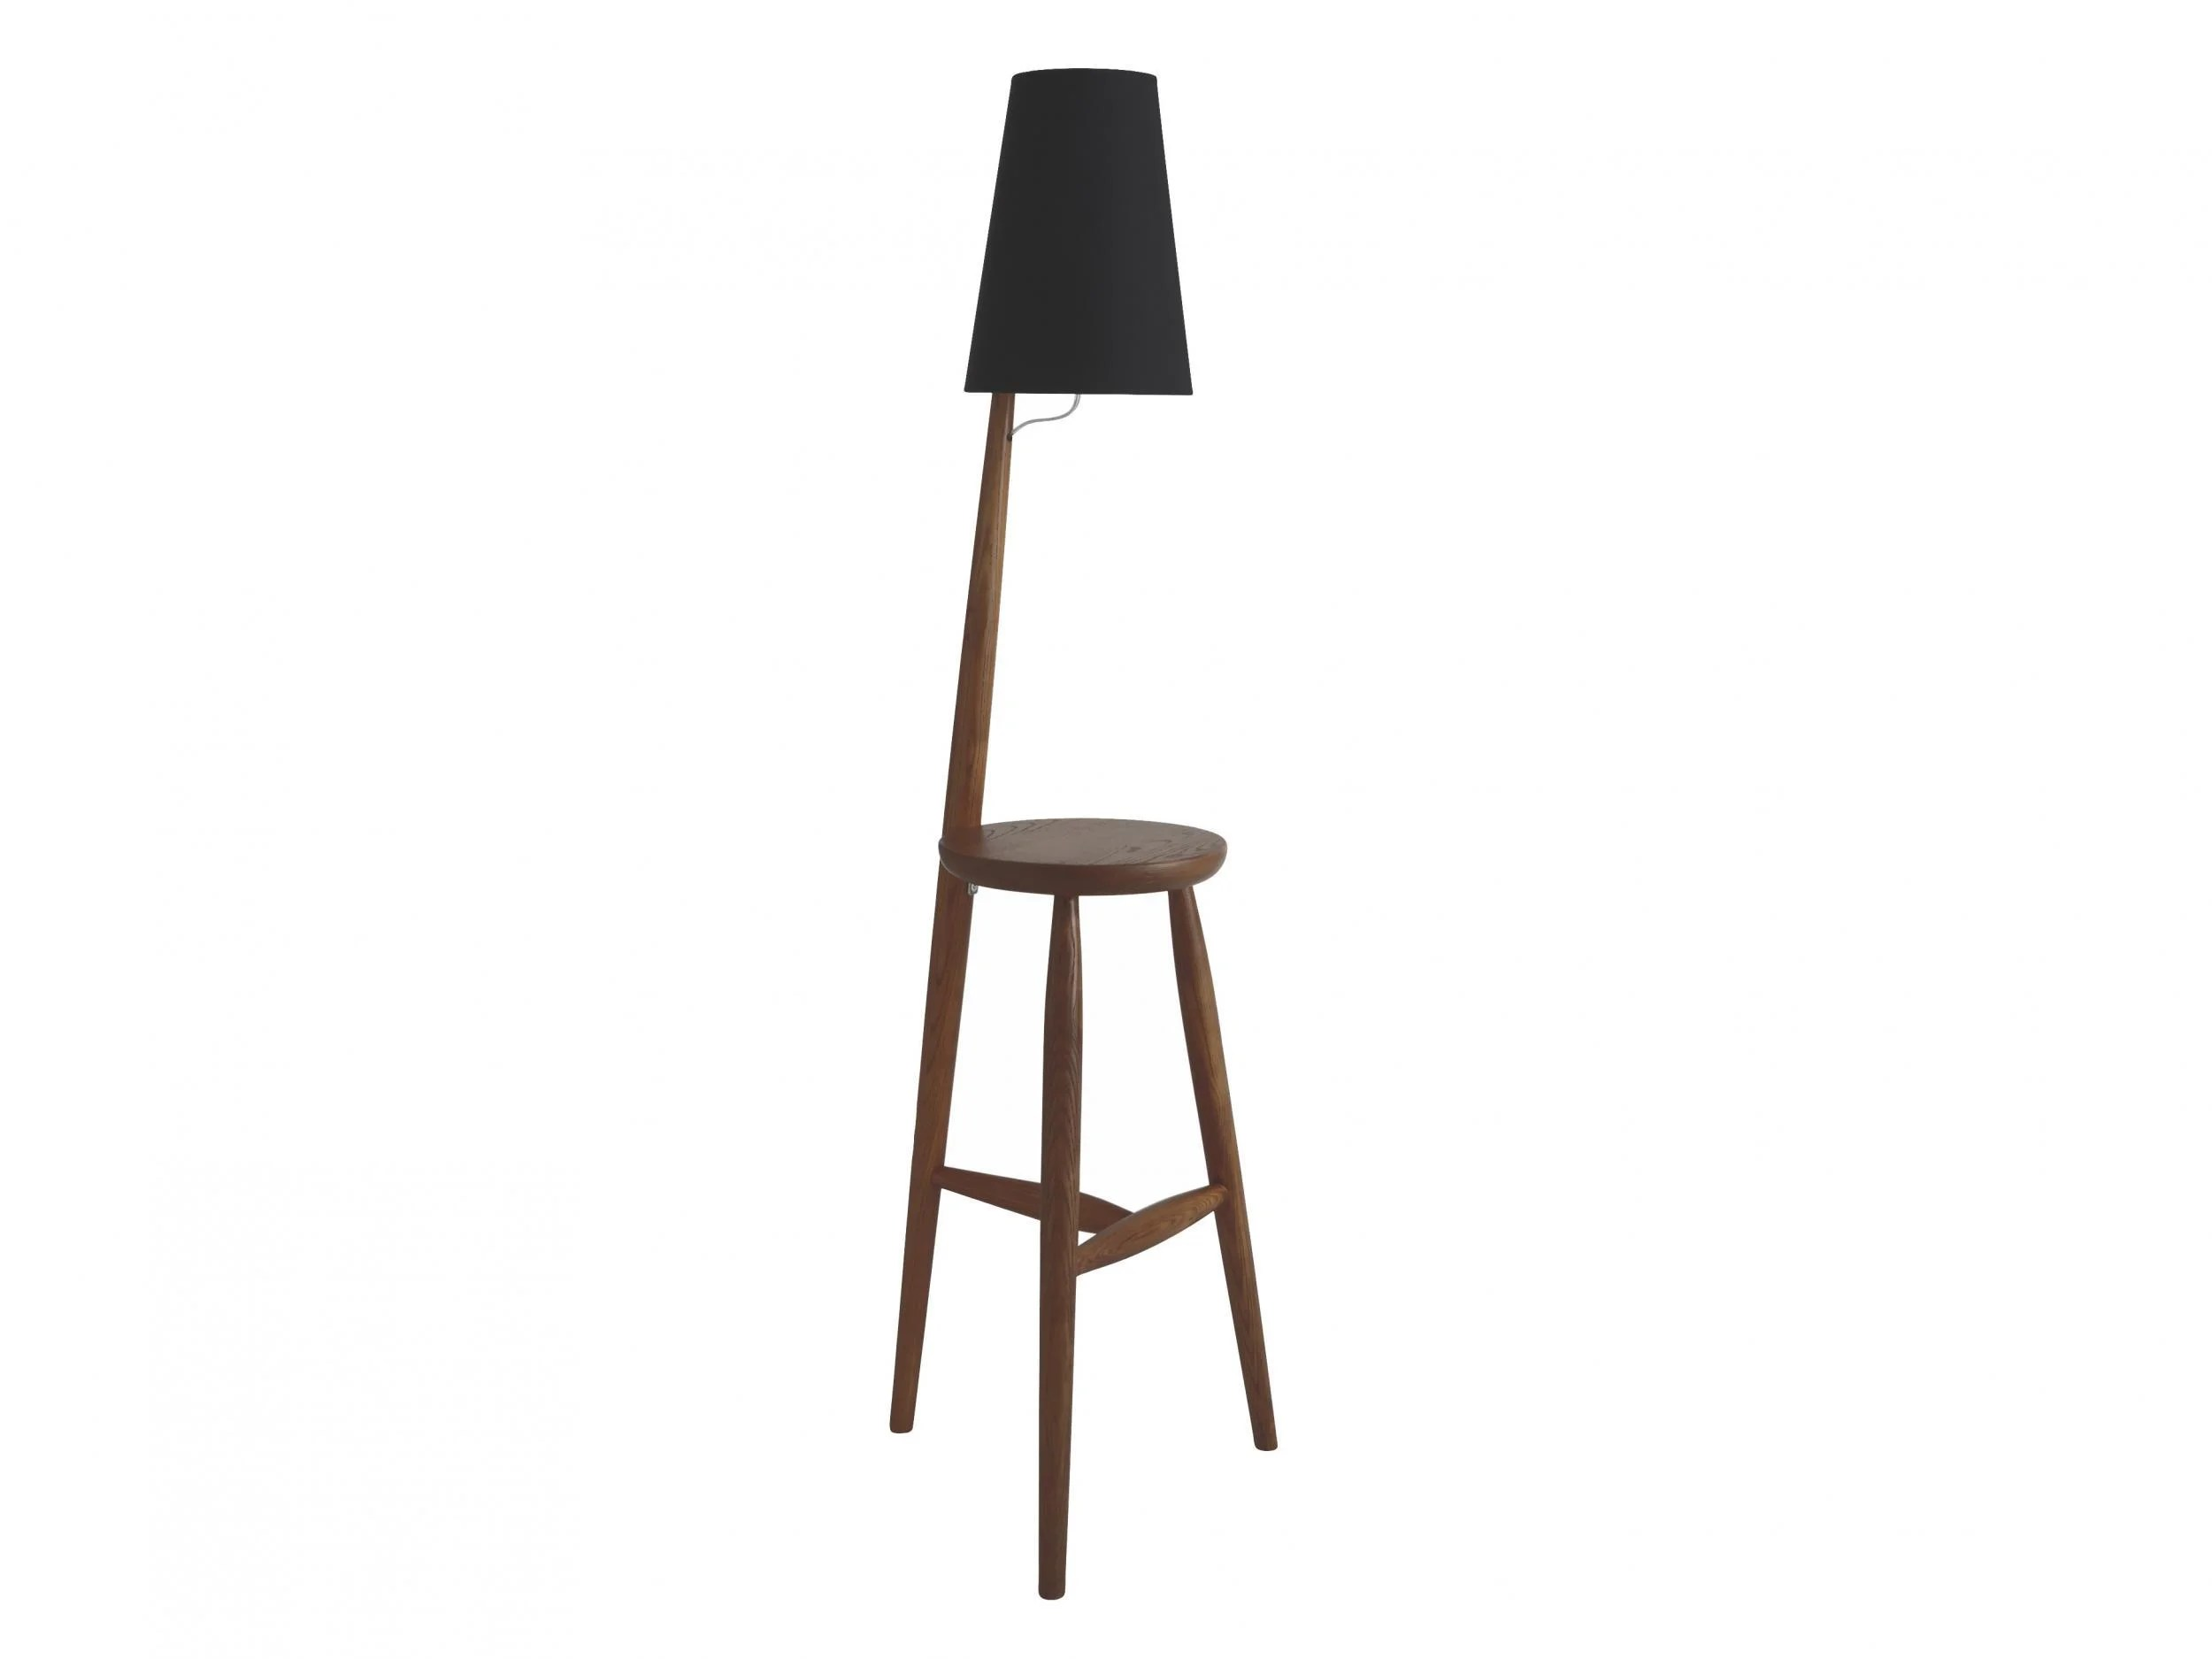 Lamps Vintage Style 110vlamps Womensfashiontrends